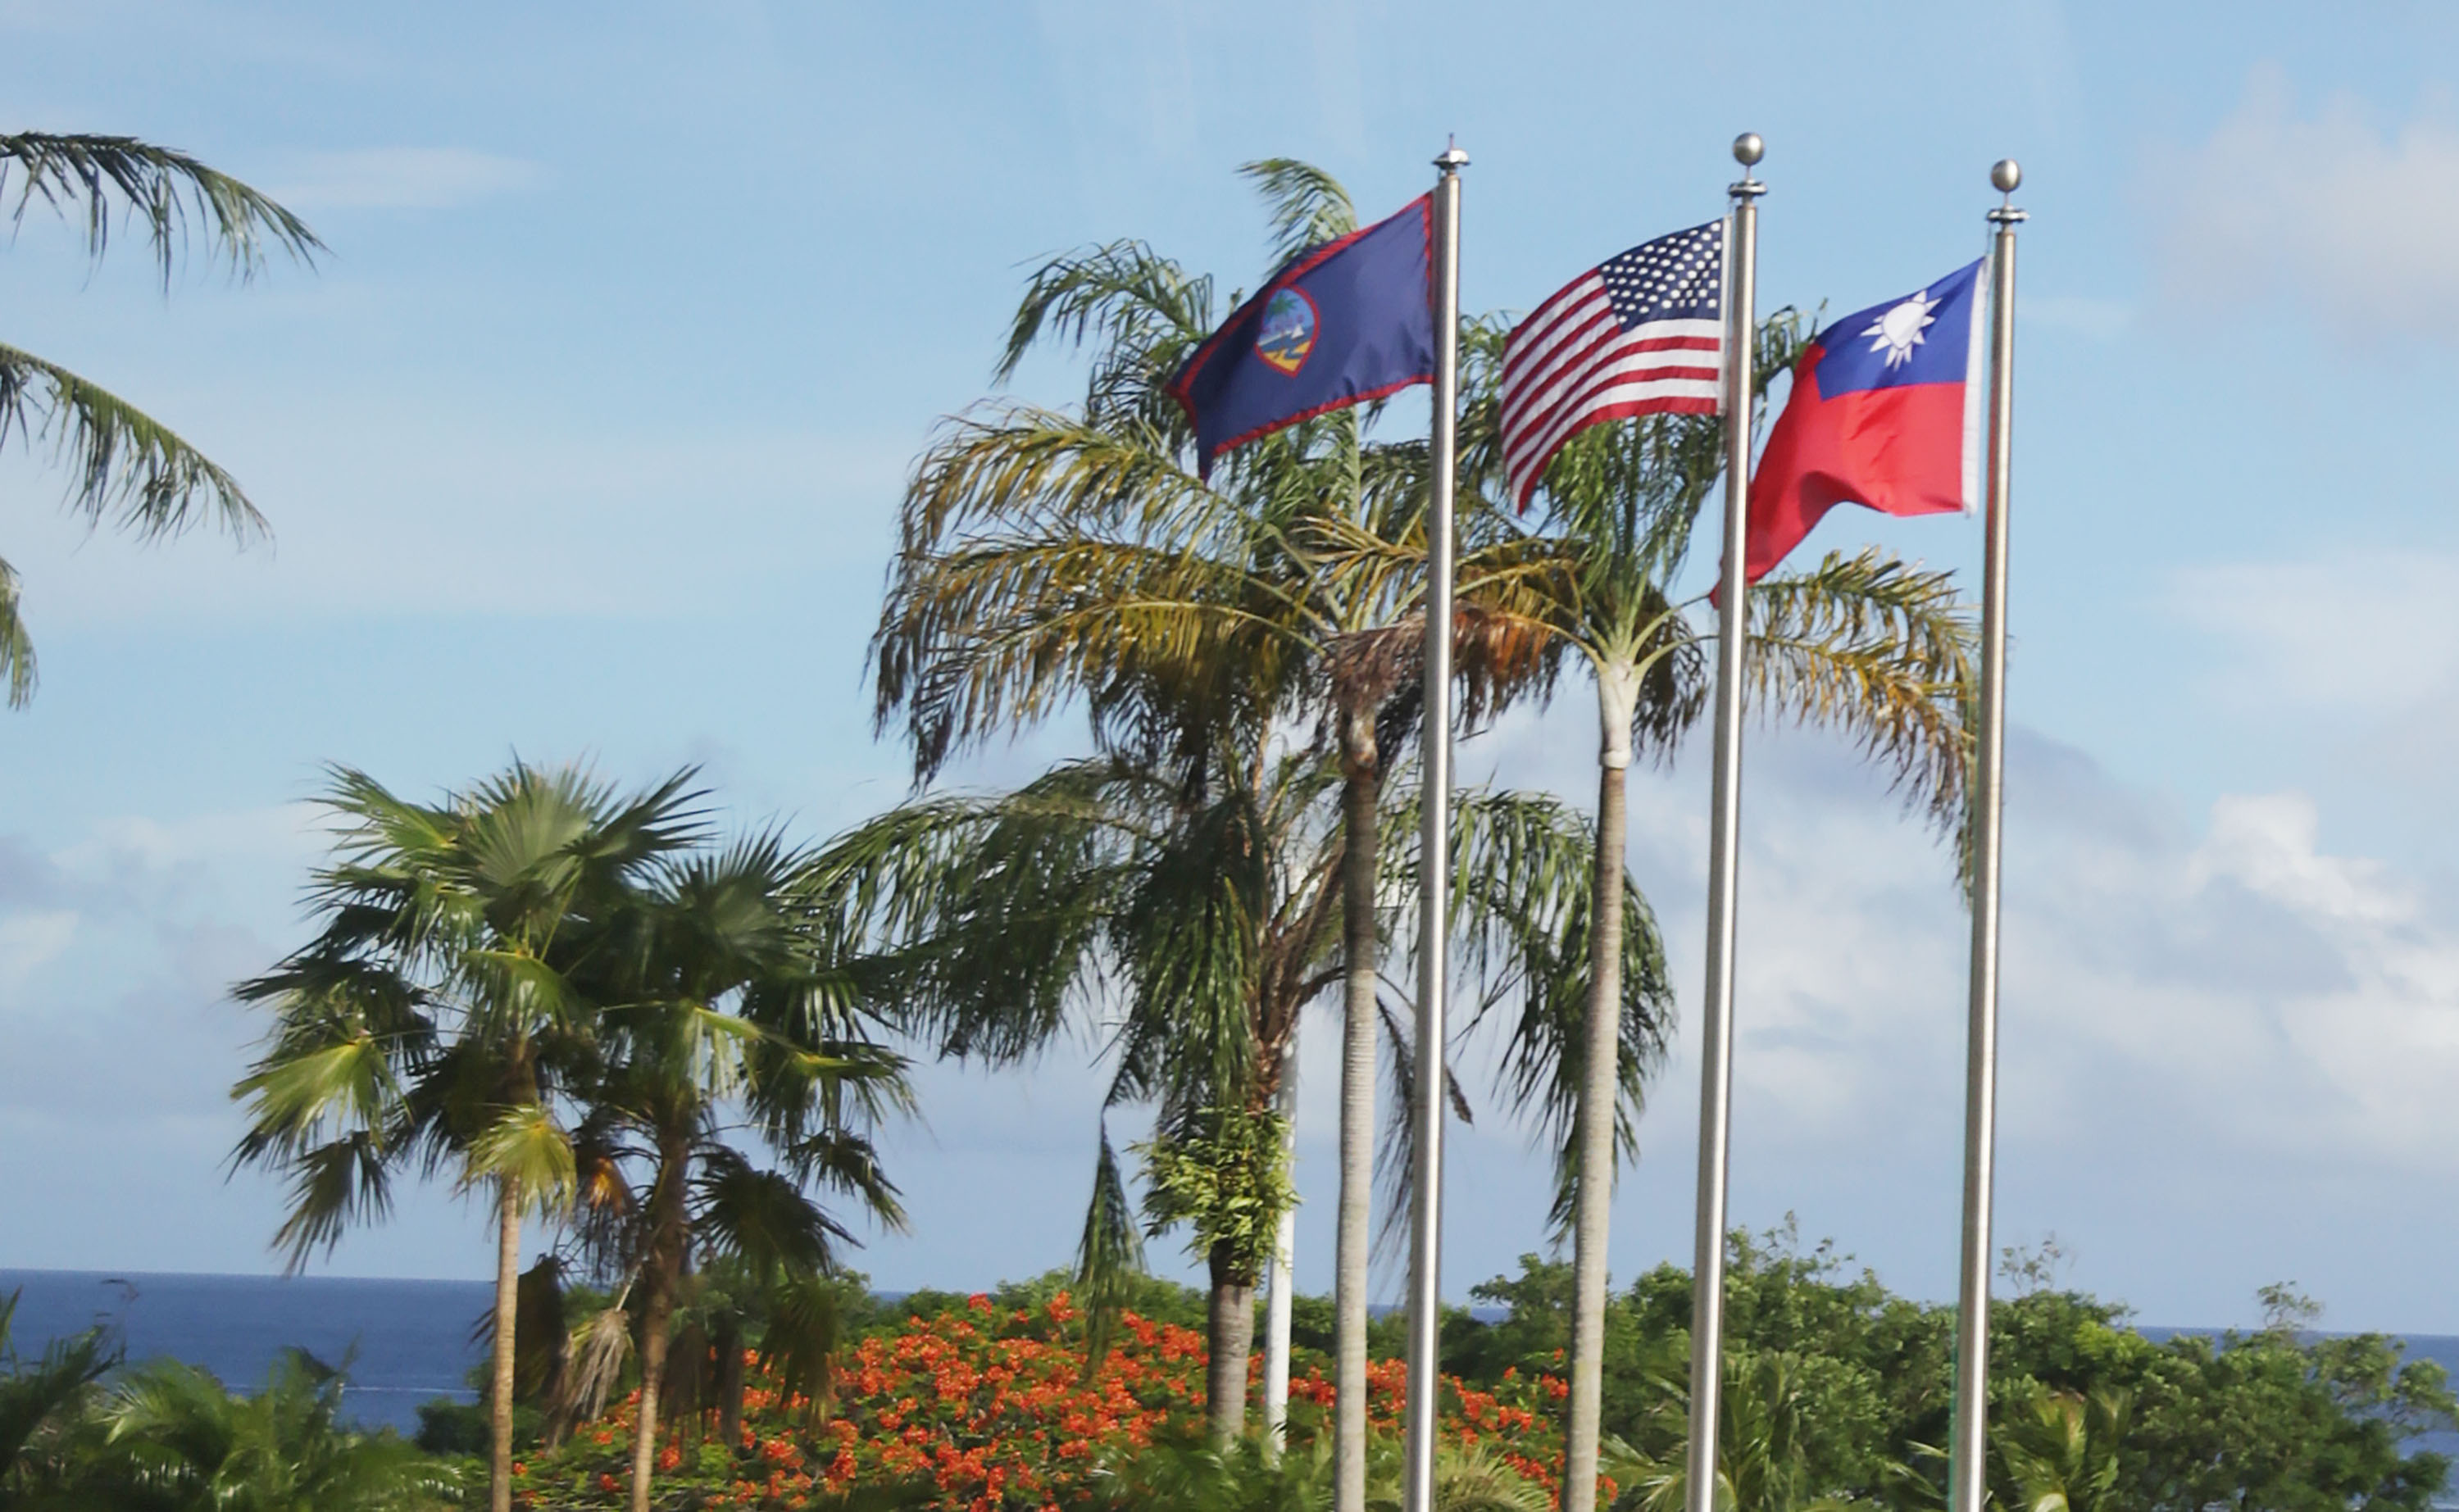 The Taiwanese flag (right) flying aside the flags of Guam and the U.S.